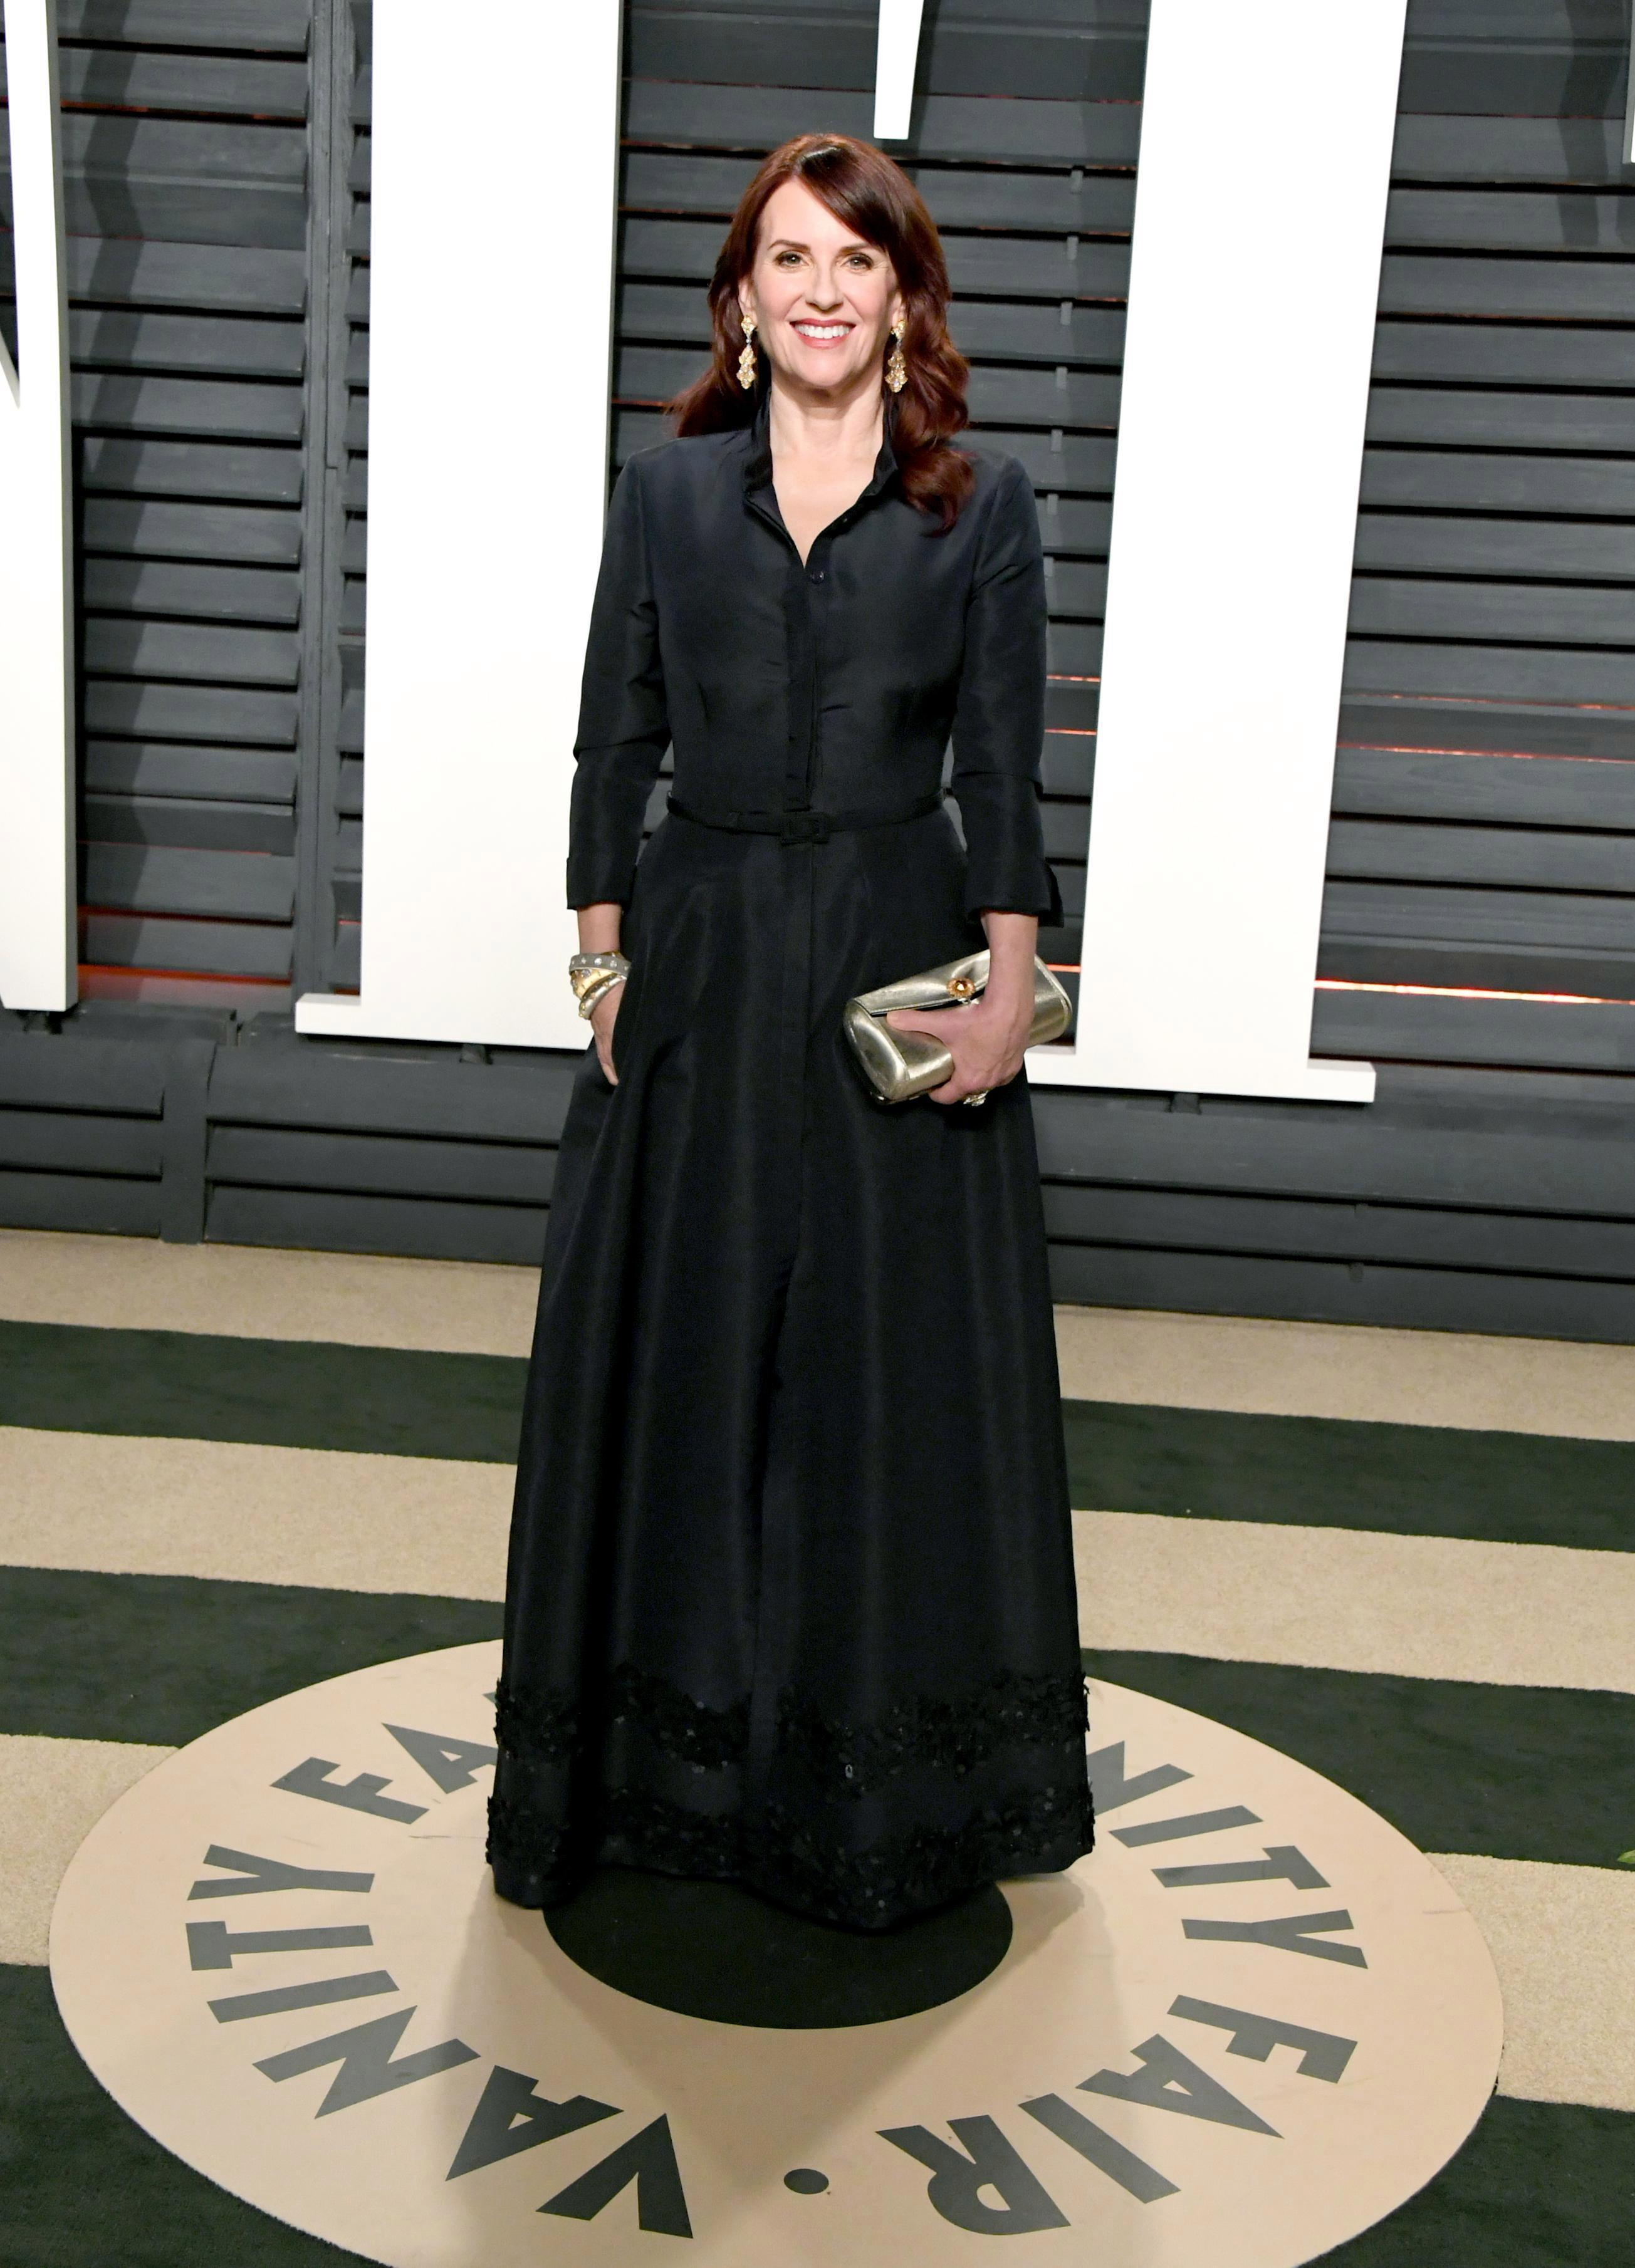 Who is Megan Mullally? Karen Walker actress on Will & Grace and Nancy and Beth singer